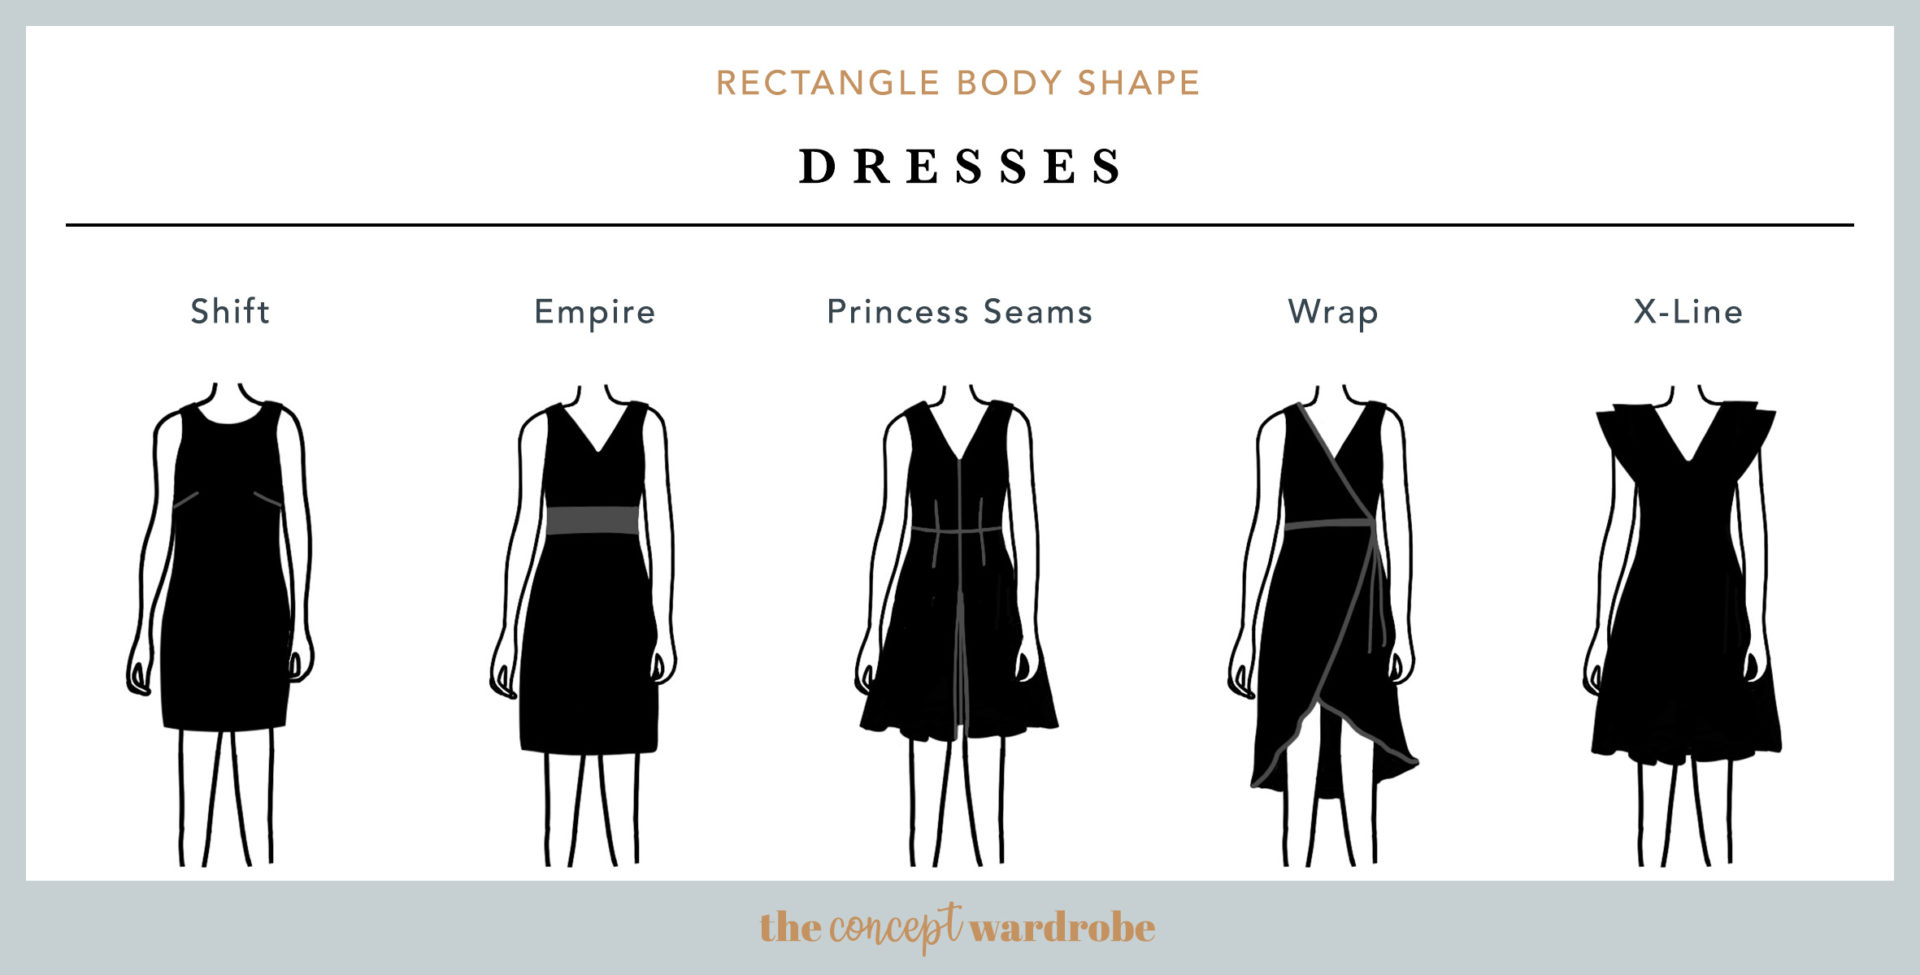 Rectangle Body Shape Dresses - the concept wardrobe